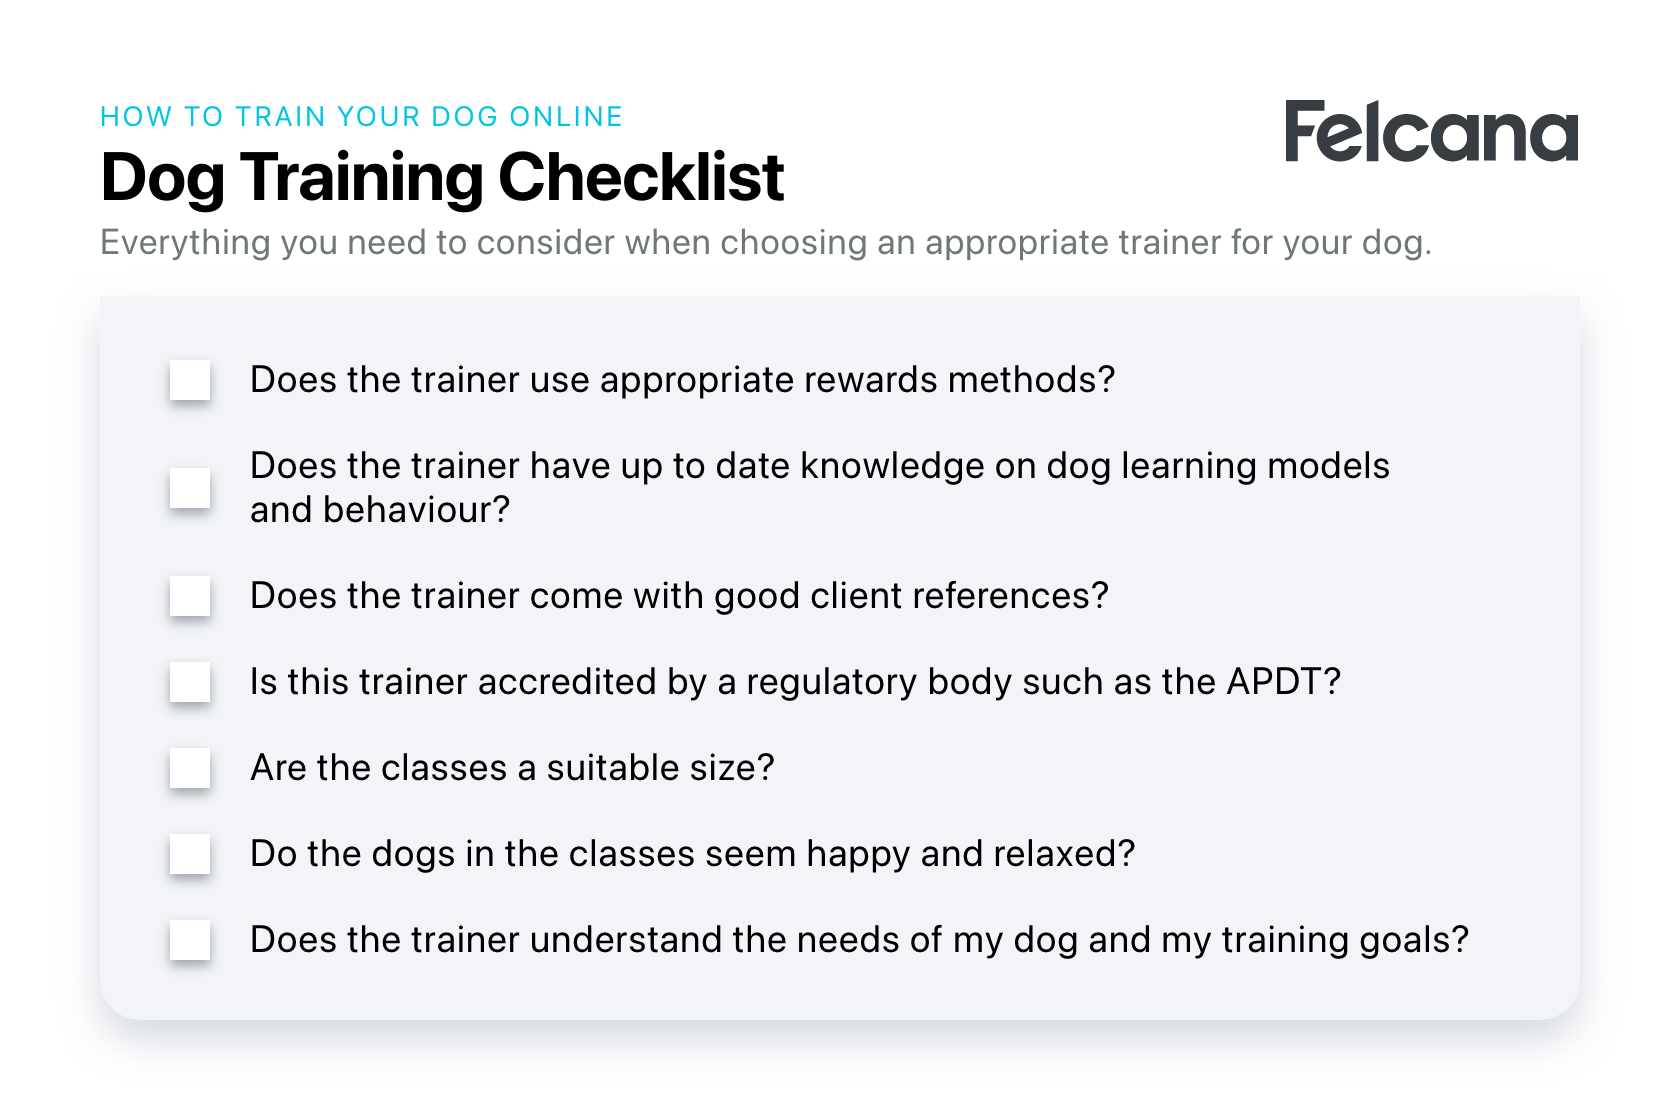 A comprehensive checklist of the key questions you should ask before choosing a dog trainer